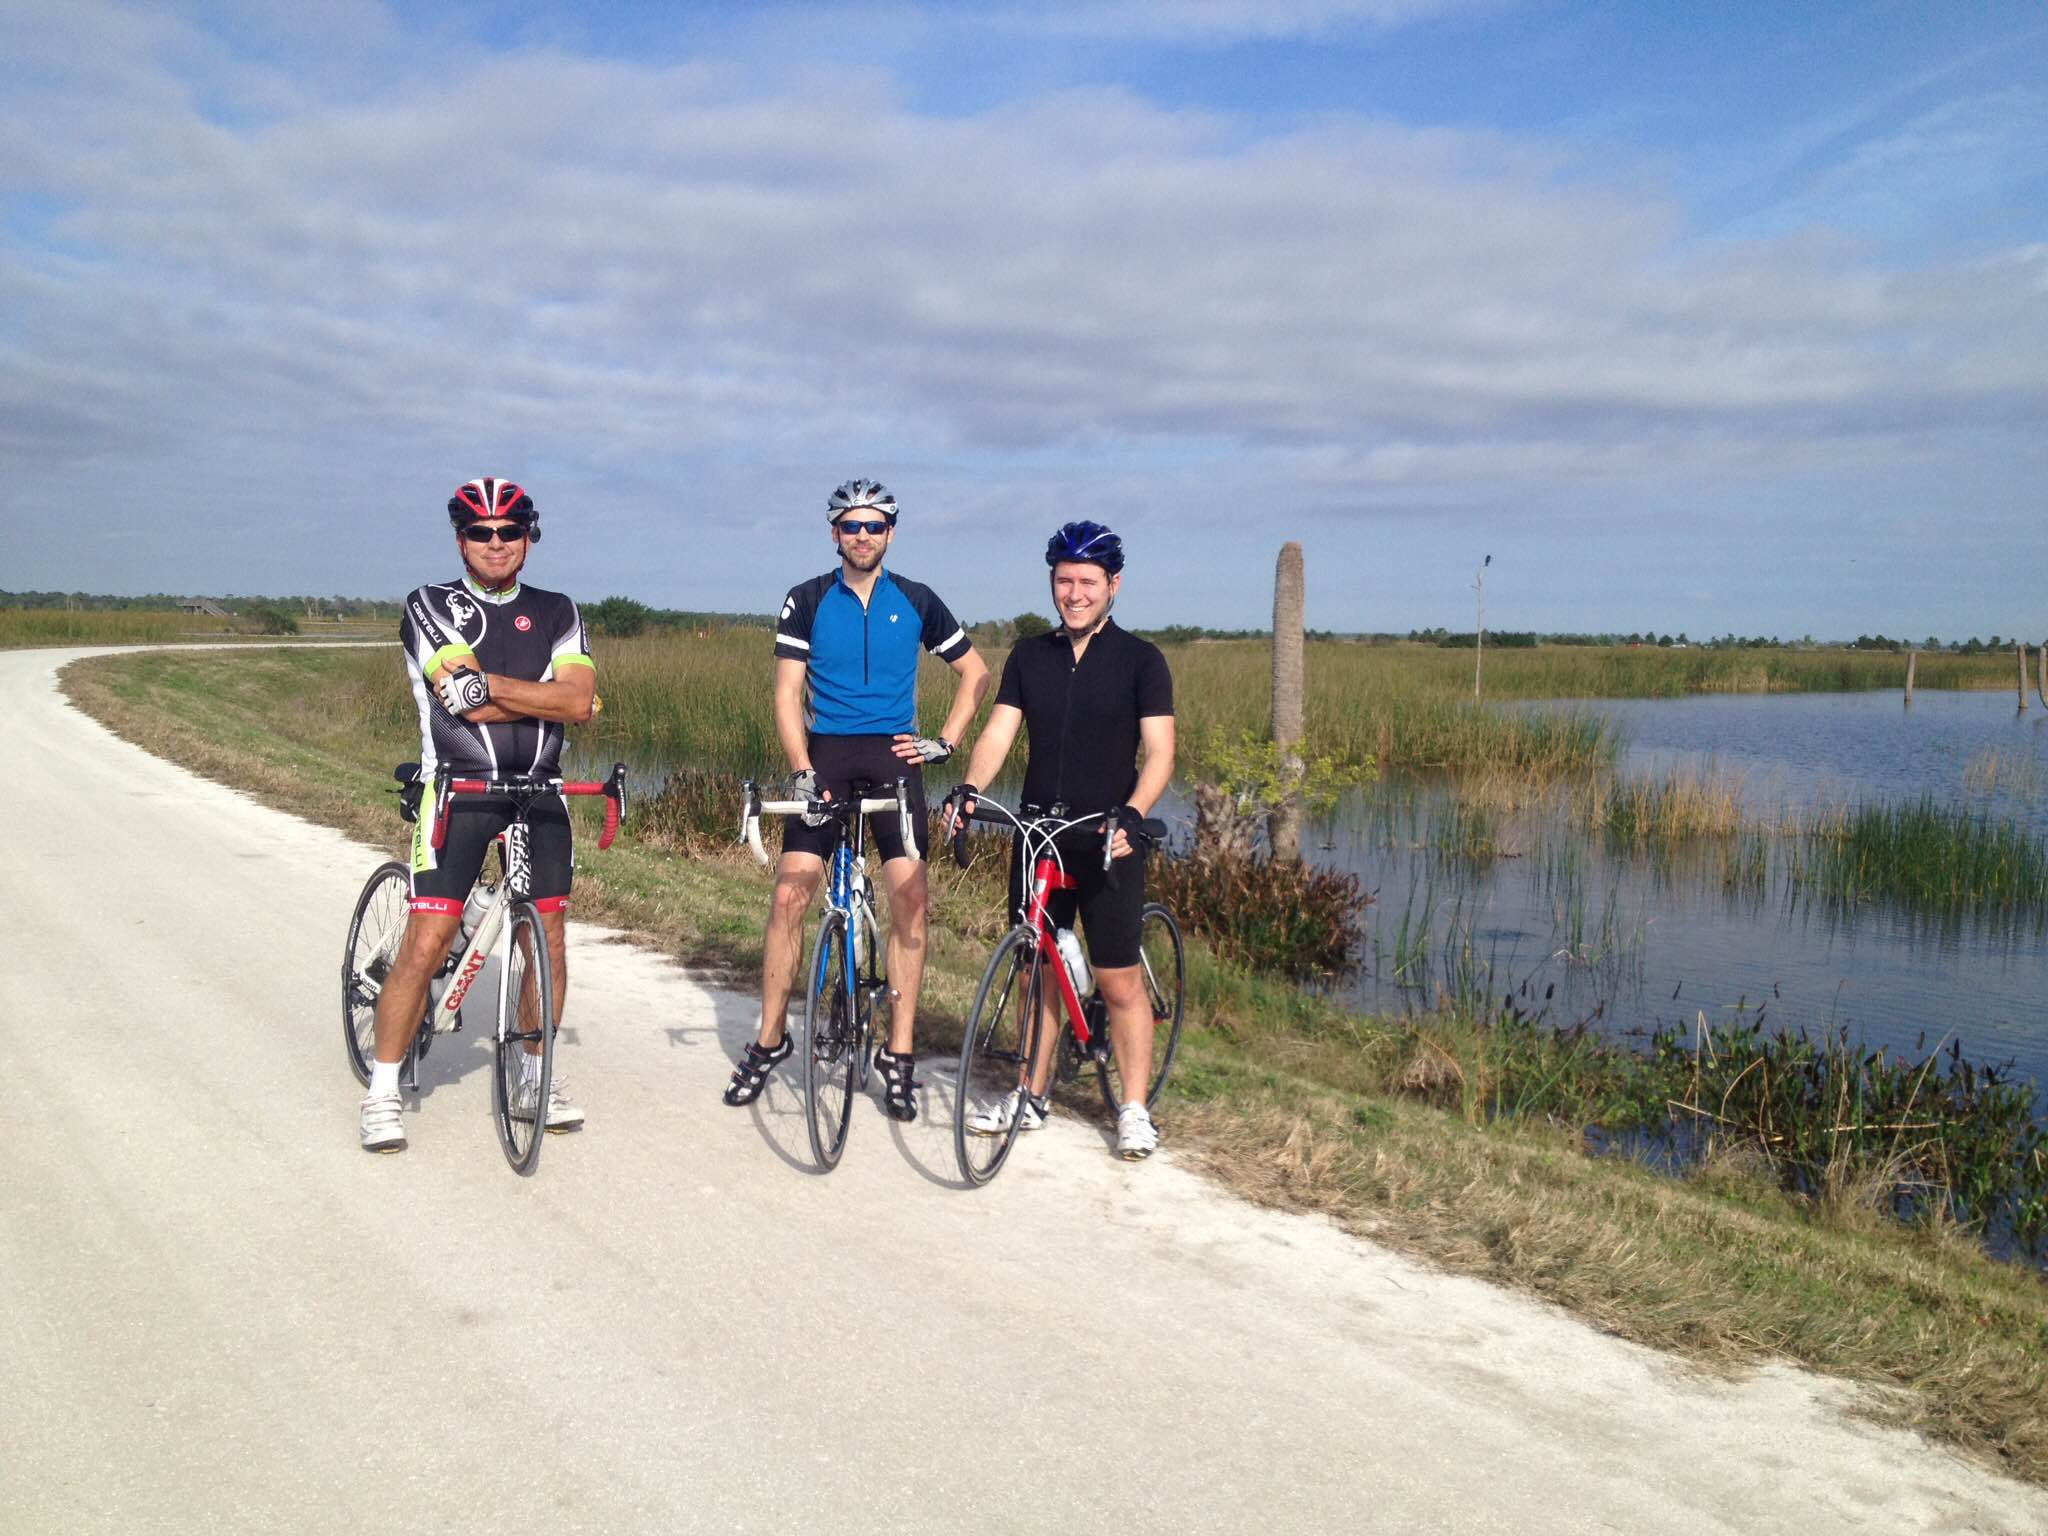 That's me in the middle biking with my dad and a friend in Florida.